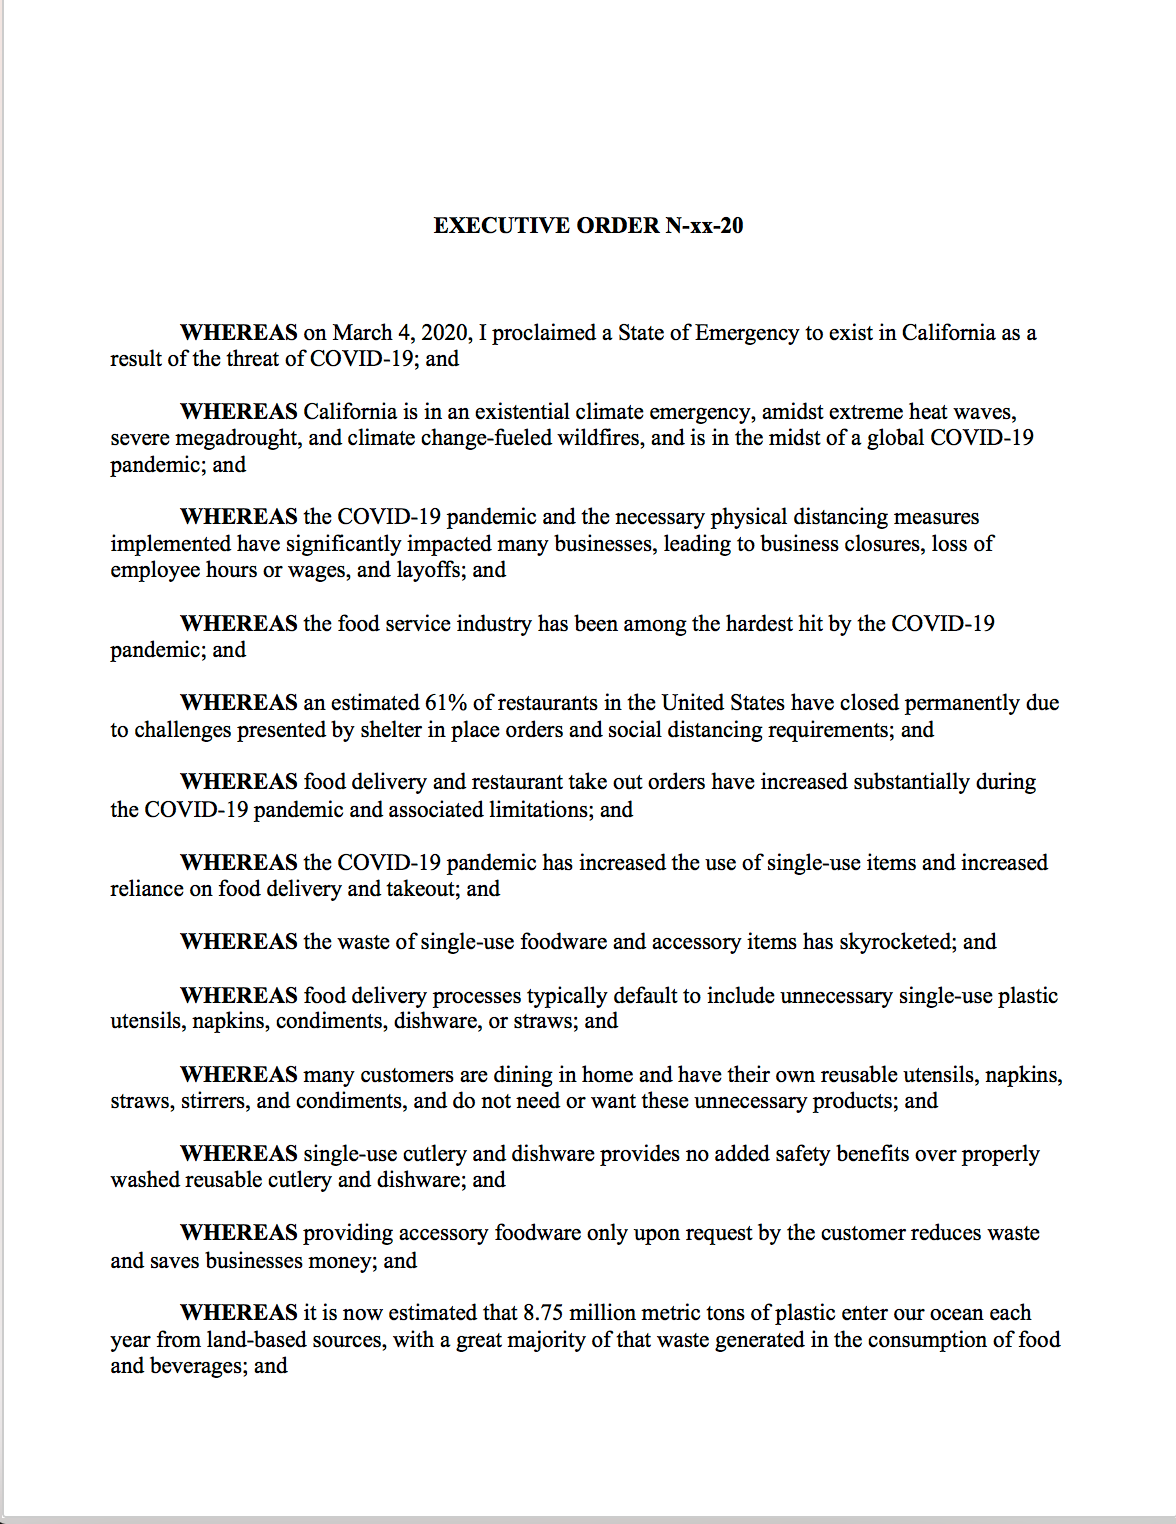 Proposed Emergency Executive Order